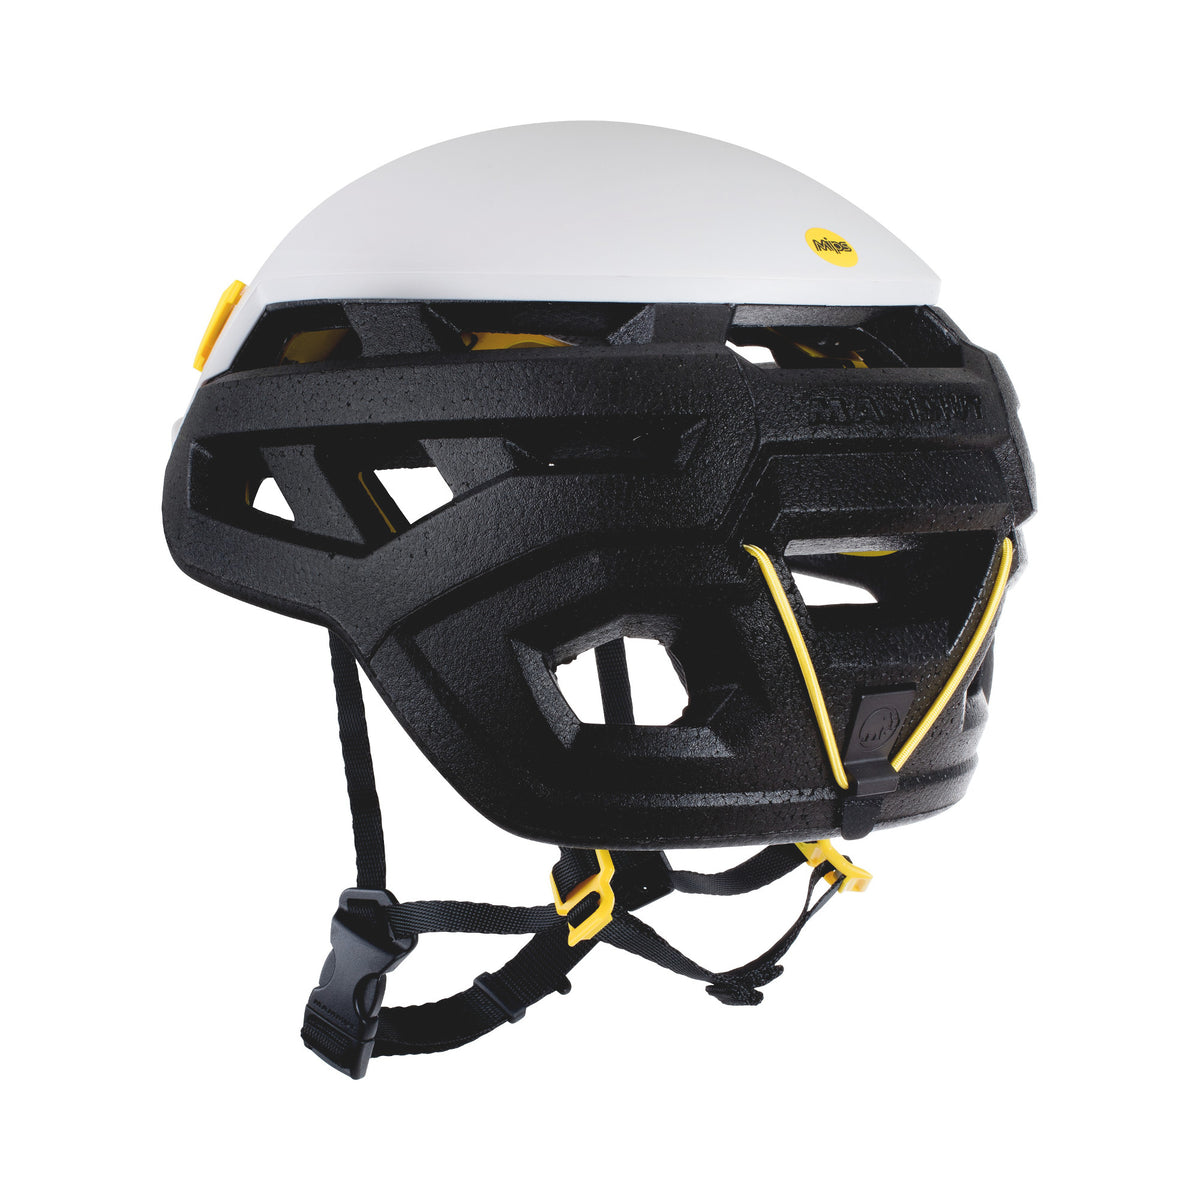 Mammut Wall Rider MIPS helmet, rear/side view